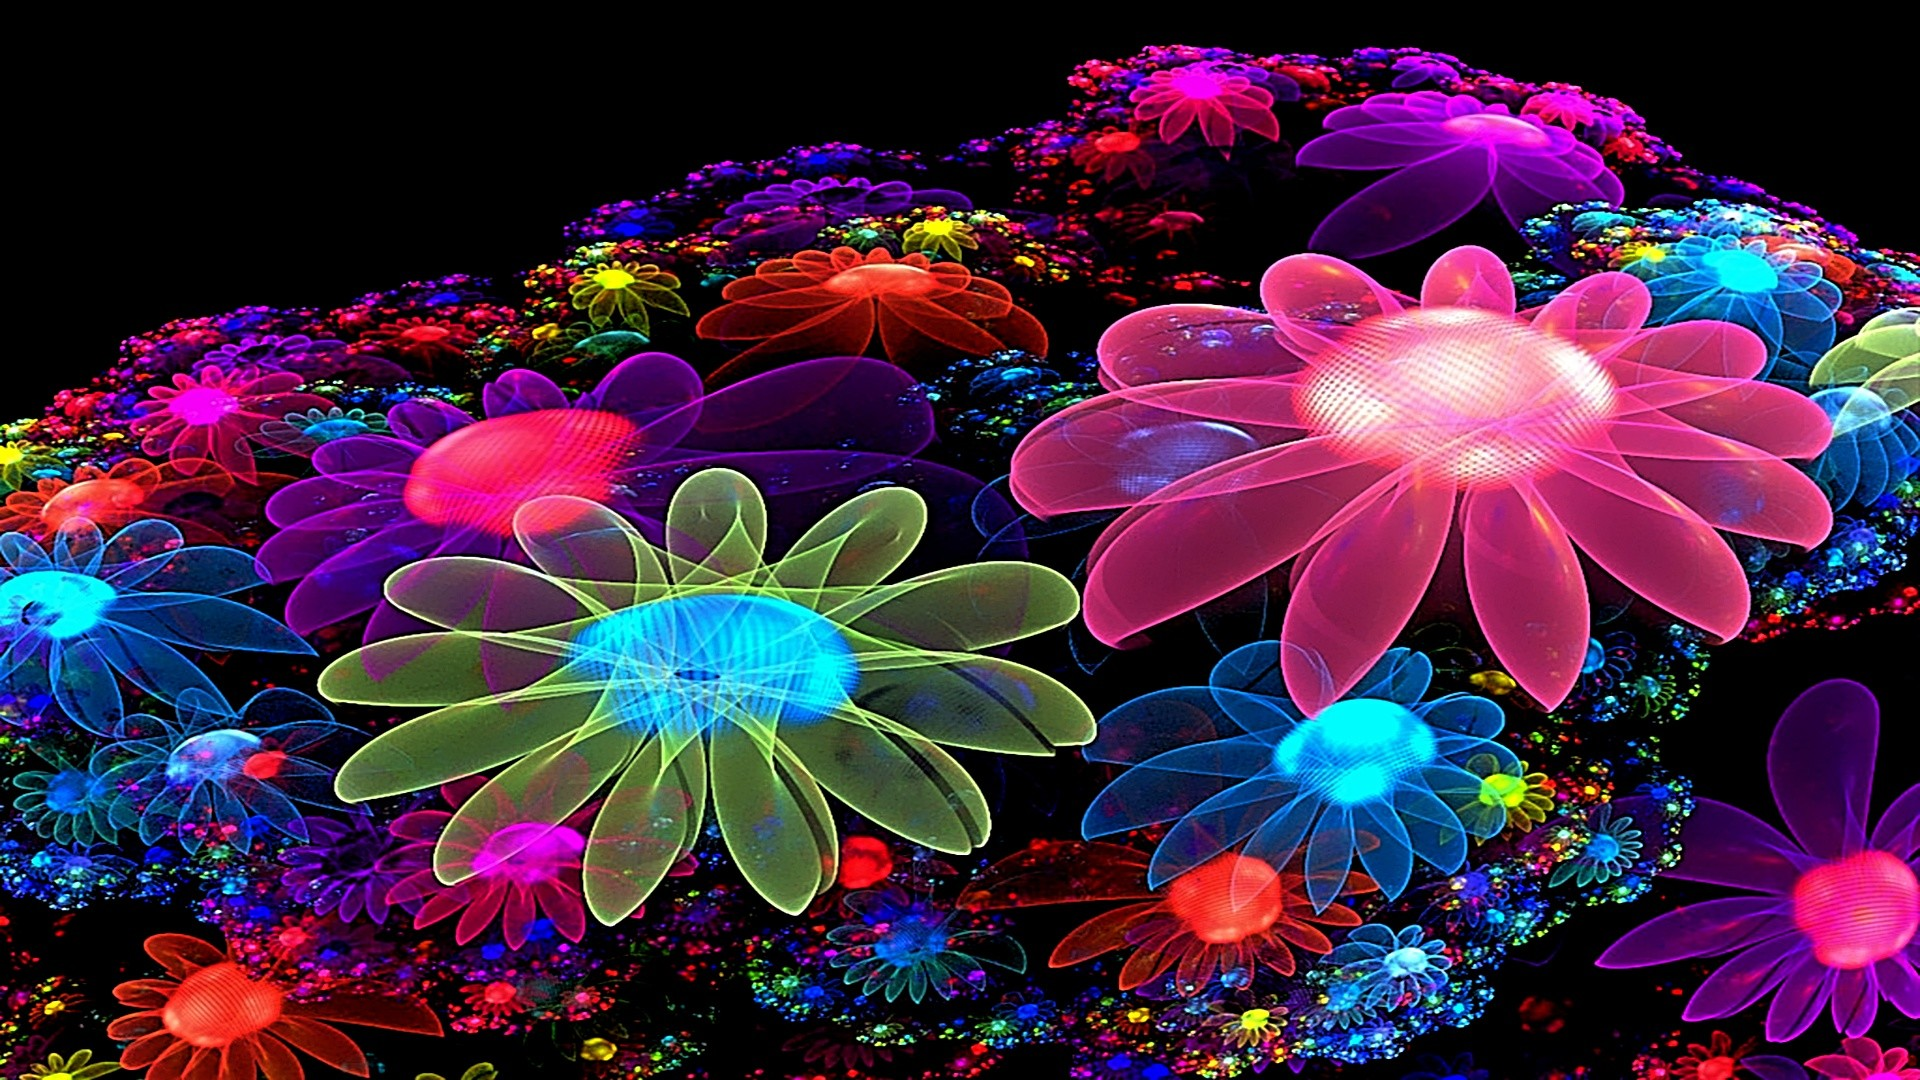 download wallpaper 1920x1080 colorful - photo #4